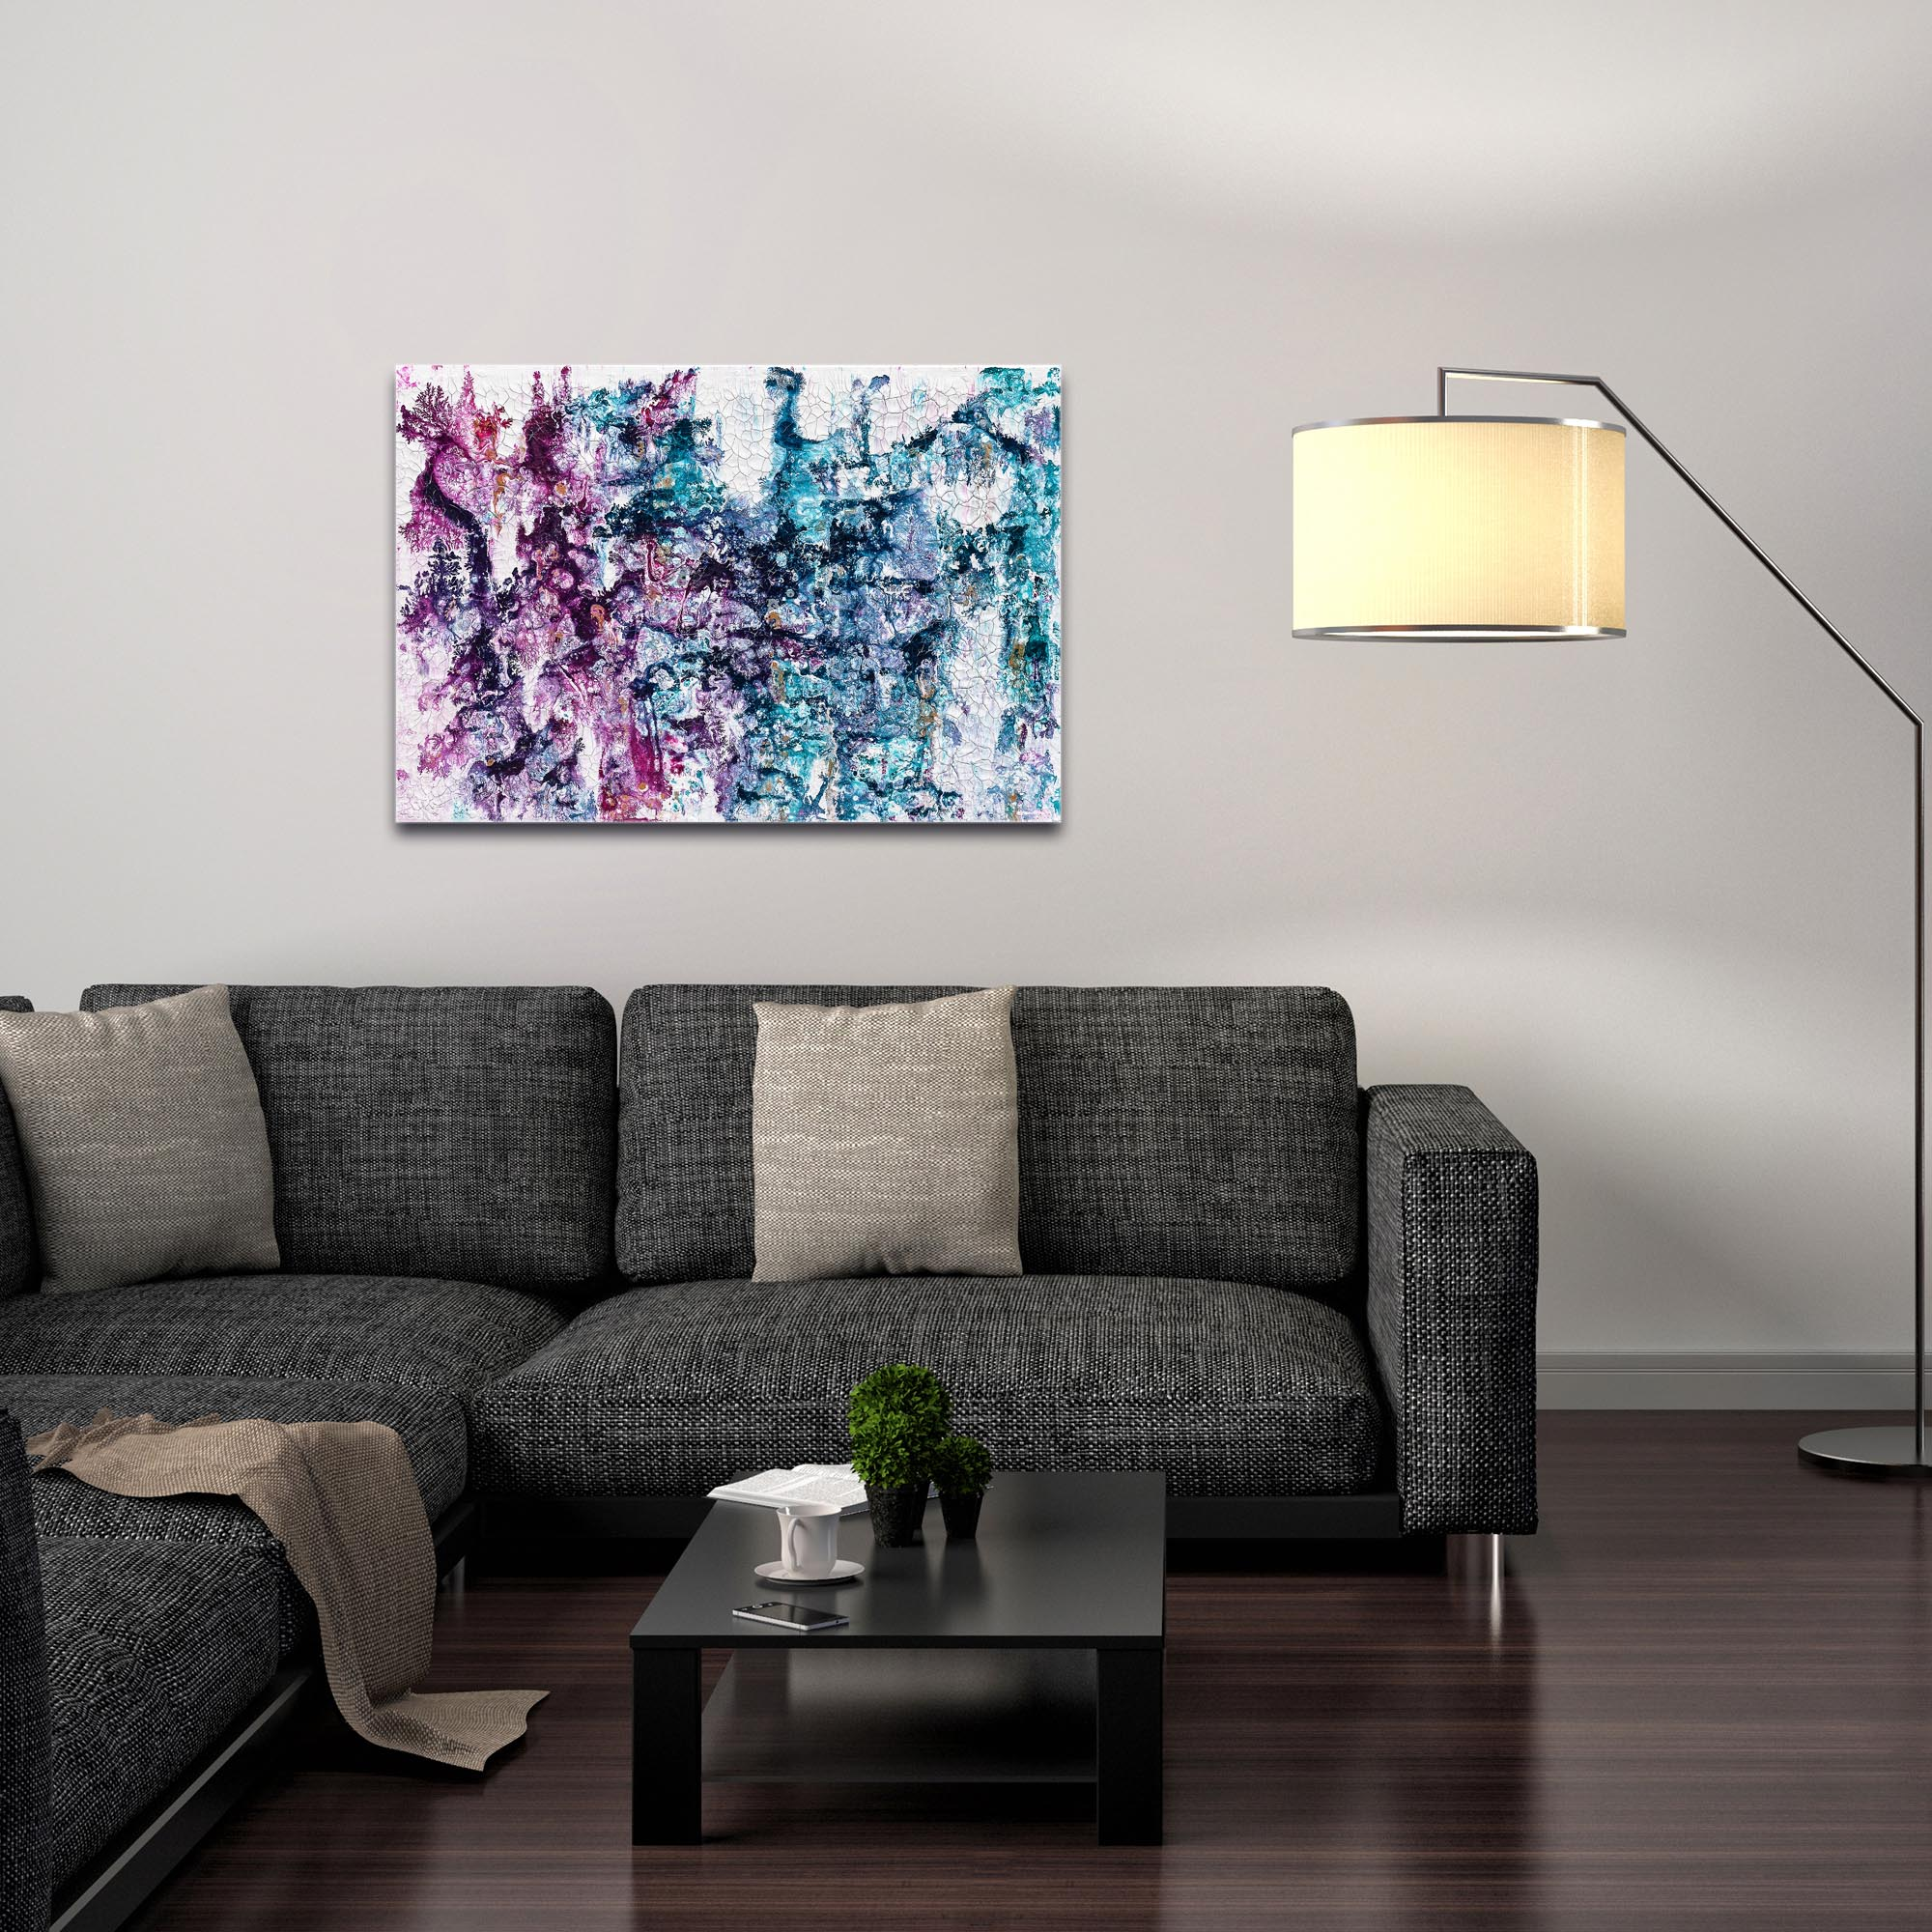 Abstract Wall Art 'Essence 1' - Colorful Urban Decor on Metal or Plexiglass - Image 3